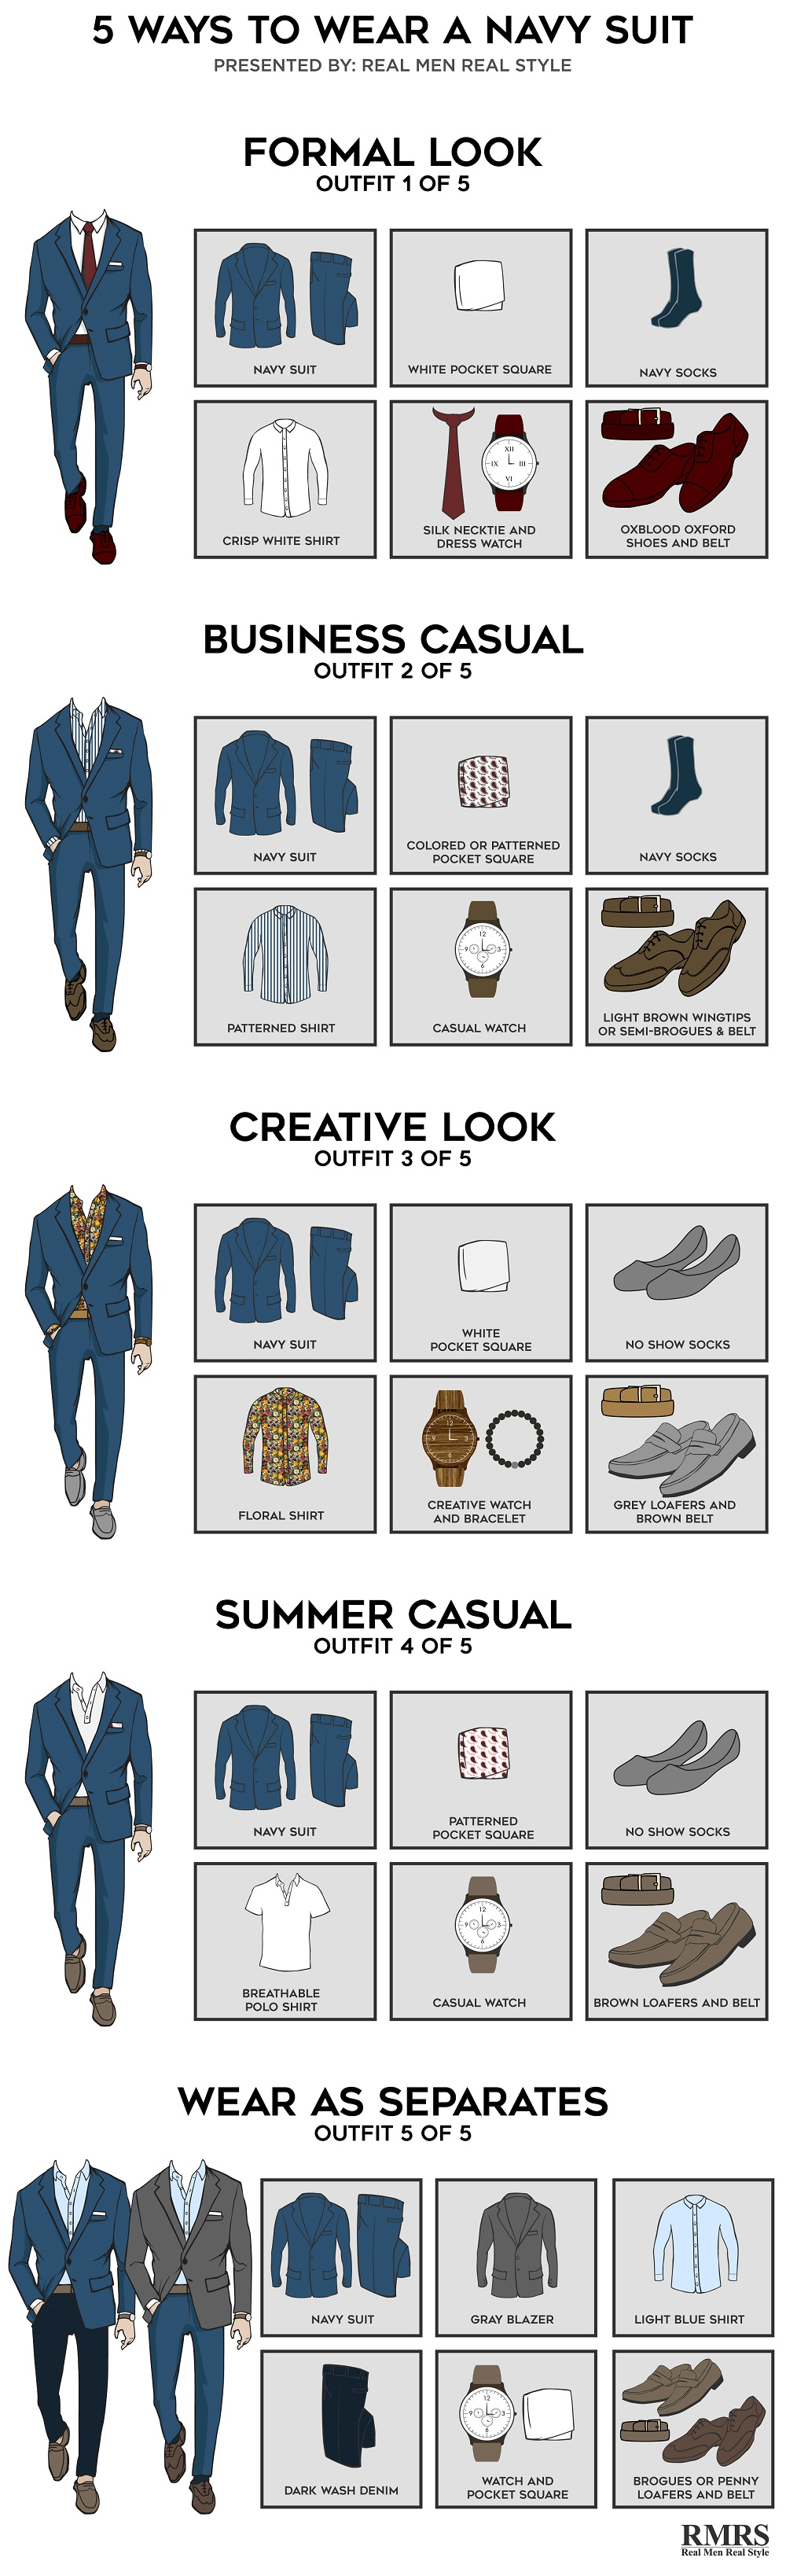 5 ways to wear a navy suit infographic